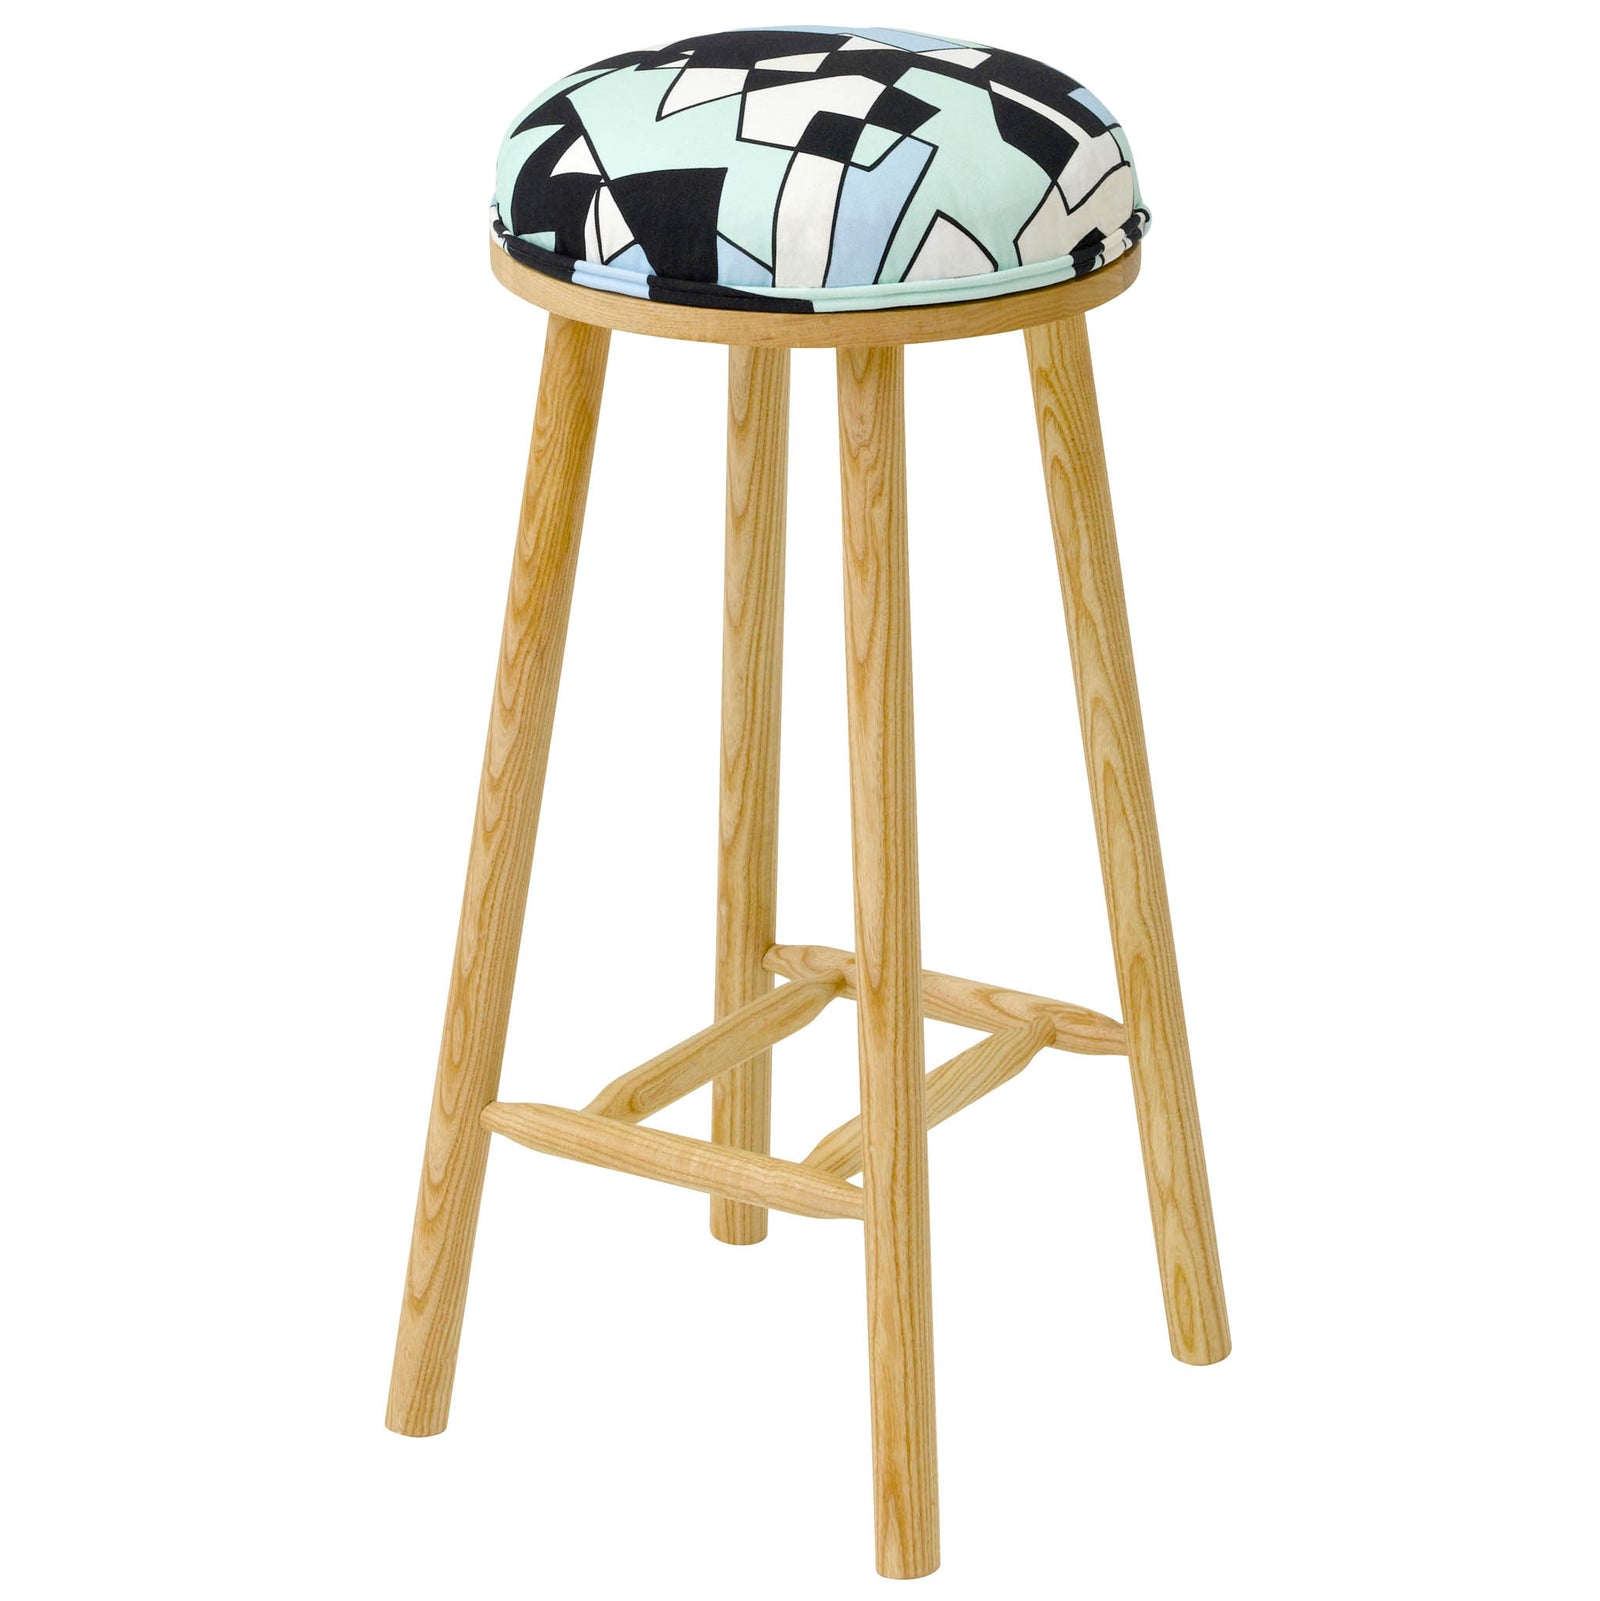 The Turner Counter Stool Upholstered in NeoGeo from Jon Burgerman